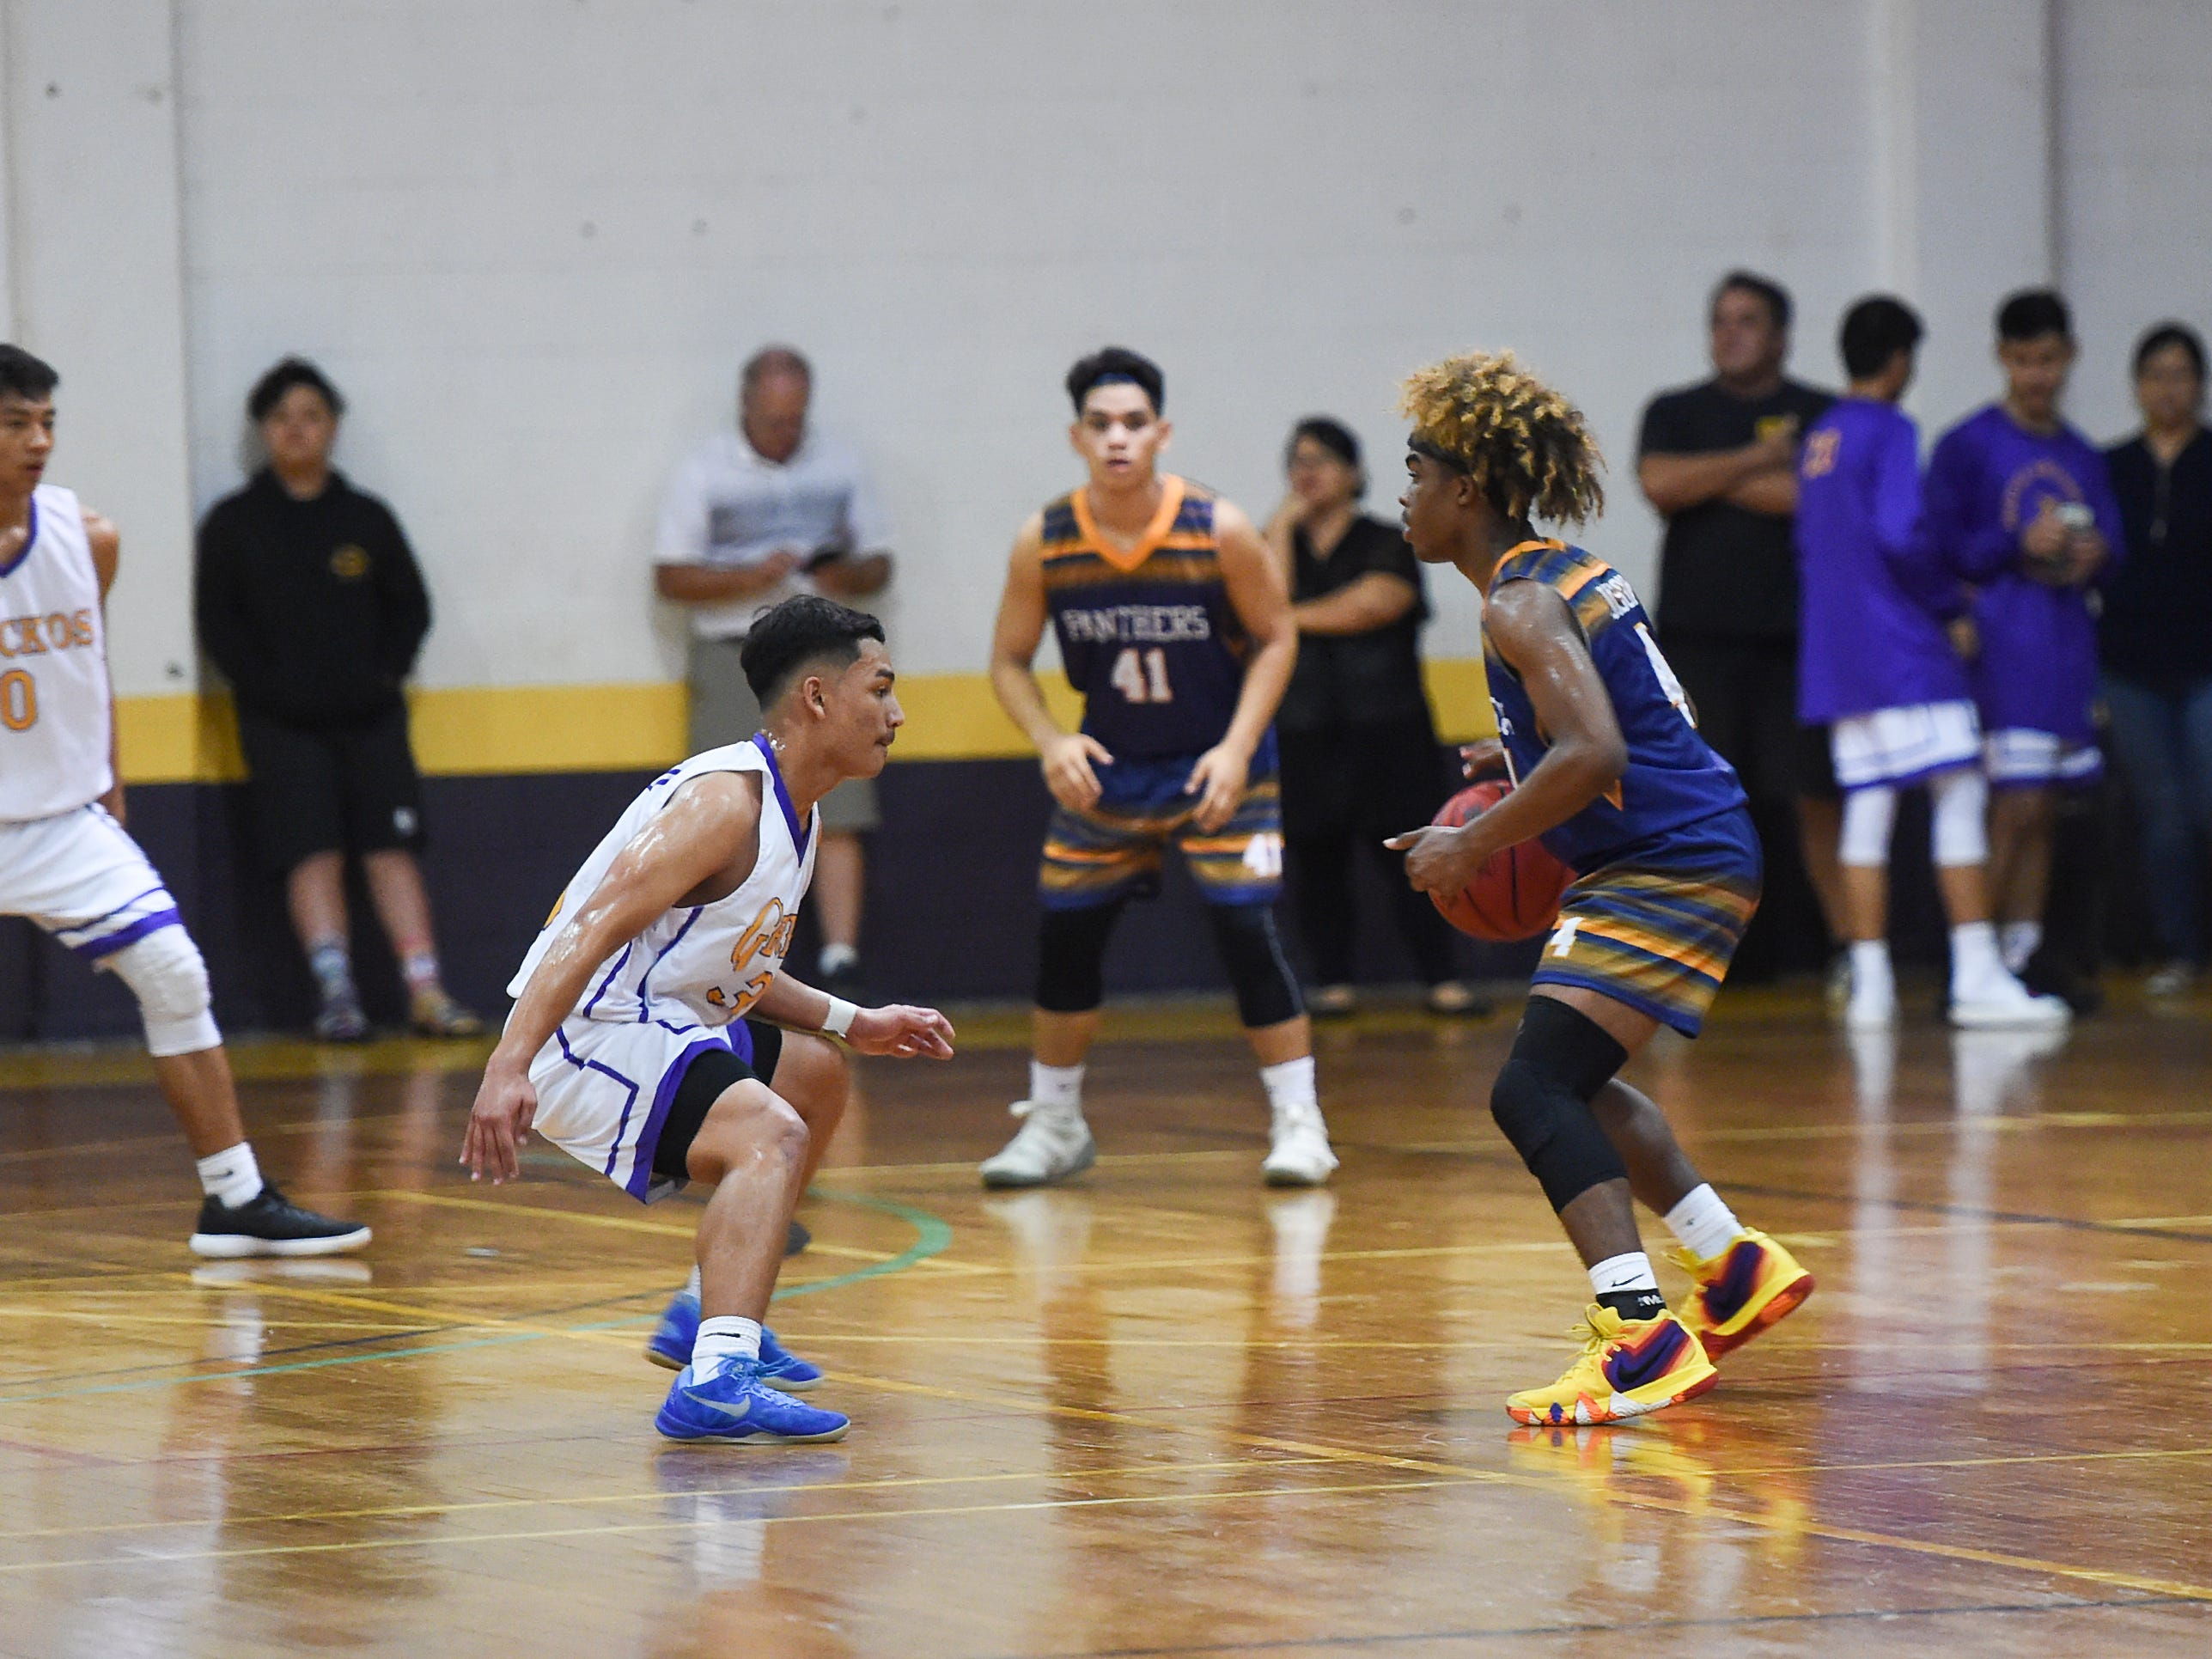 Guam High's Jayson Jackson (4) handles the ball against George Washington player Dylan Trusso during their Independent Interscholastic Athletic Association of Guam Boys' Basketball game at the GW High School gym on Feb. 2, 2019.